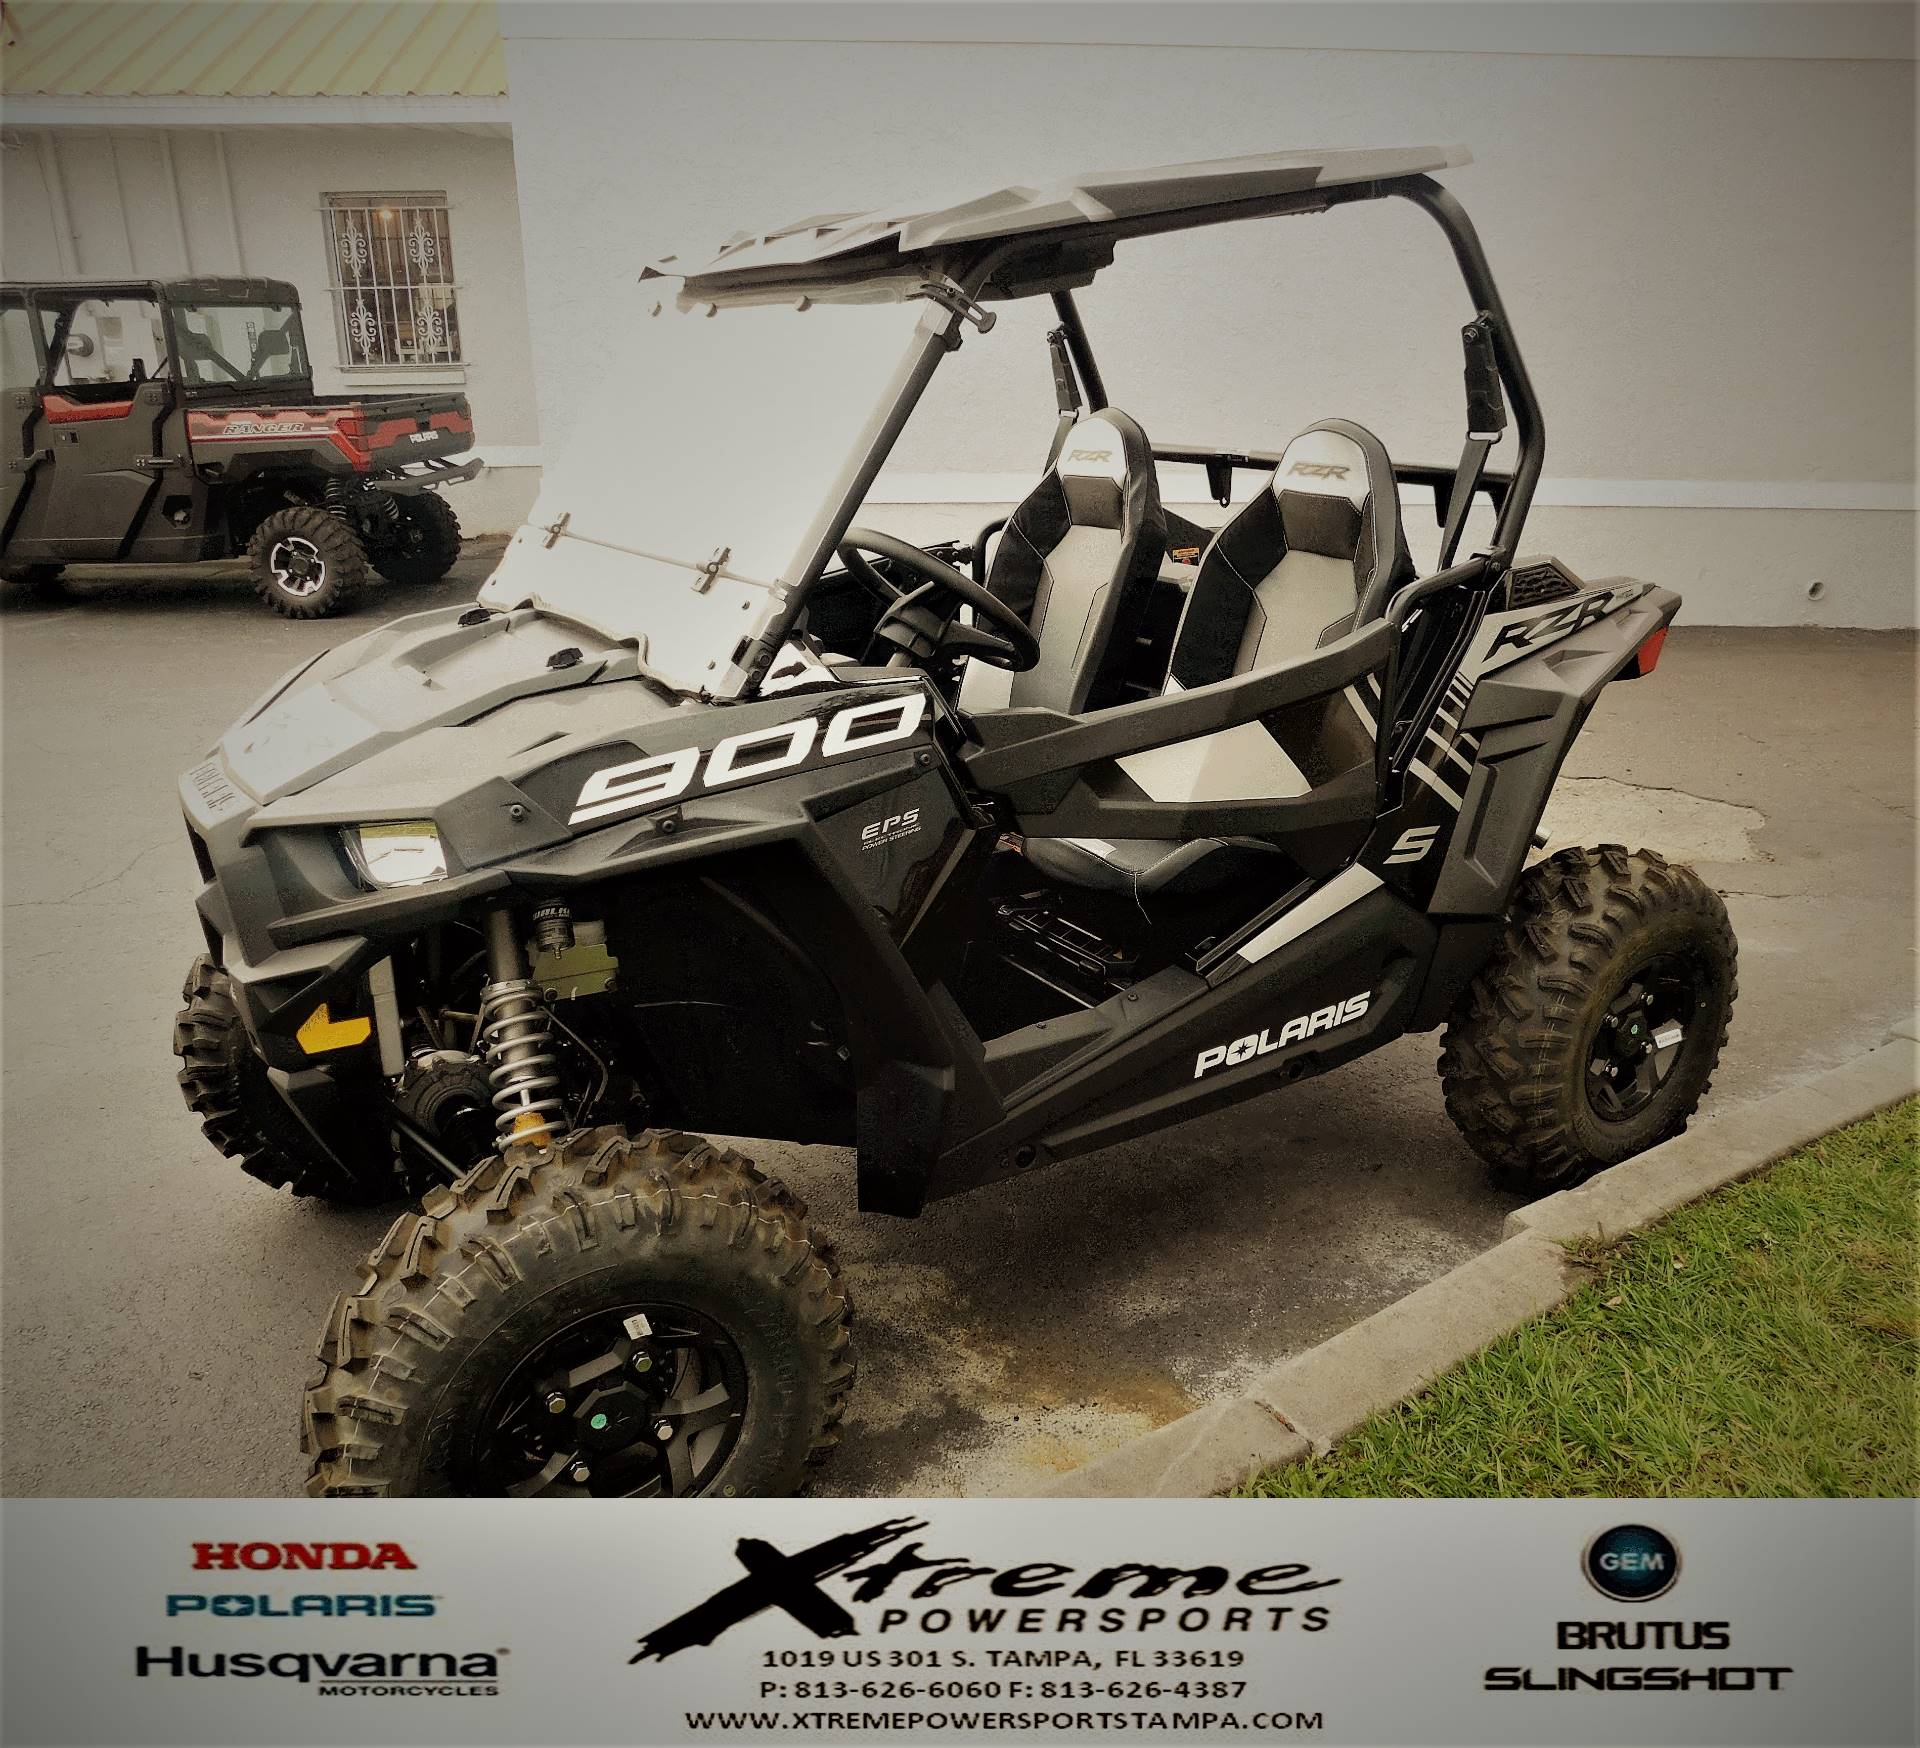 2019 Polaris RAZOR S 900 EPS in Tampa, Florida